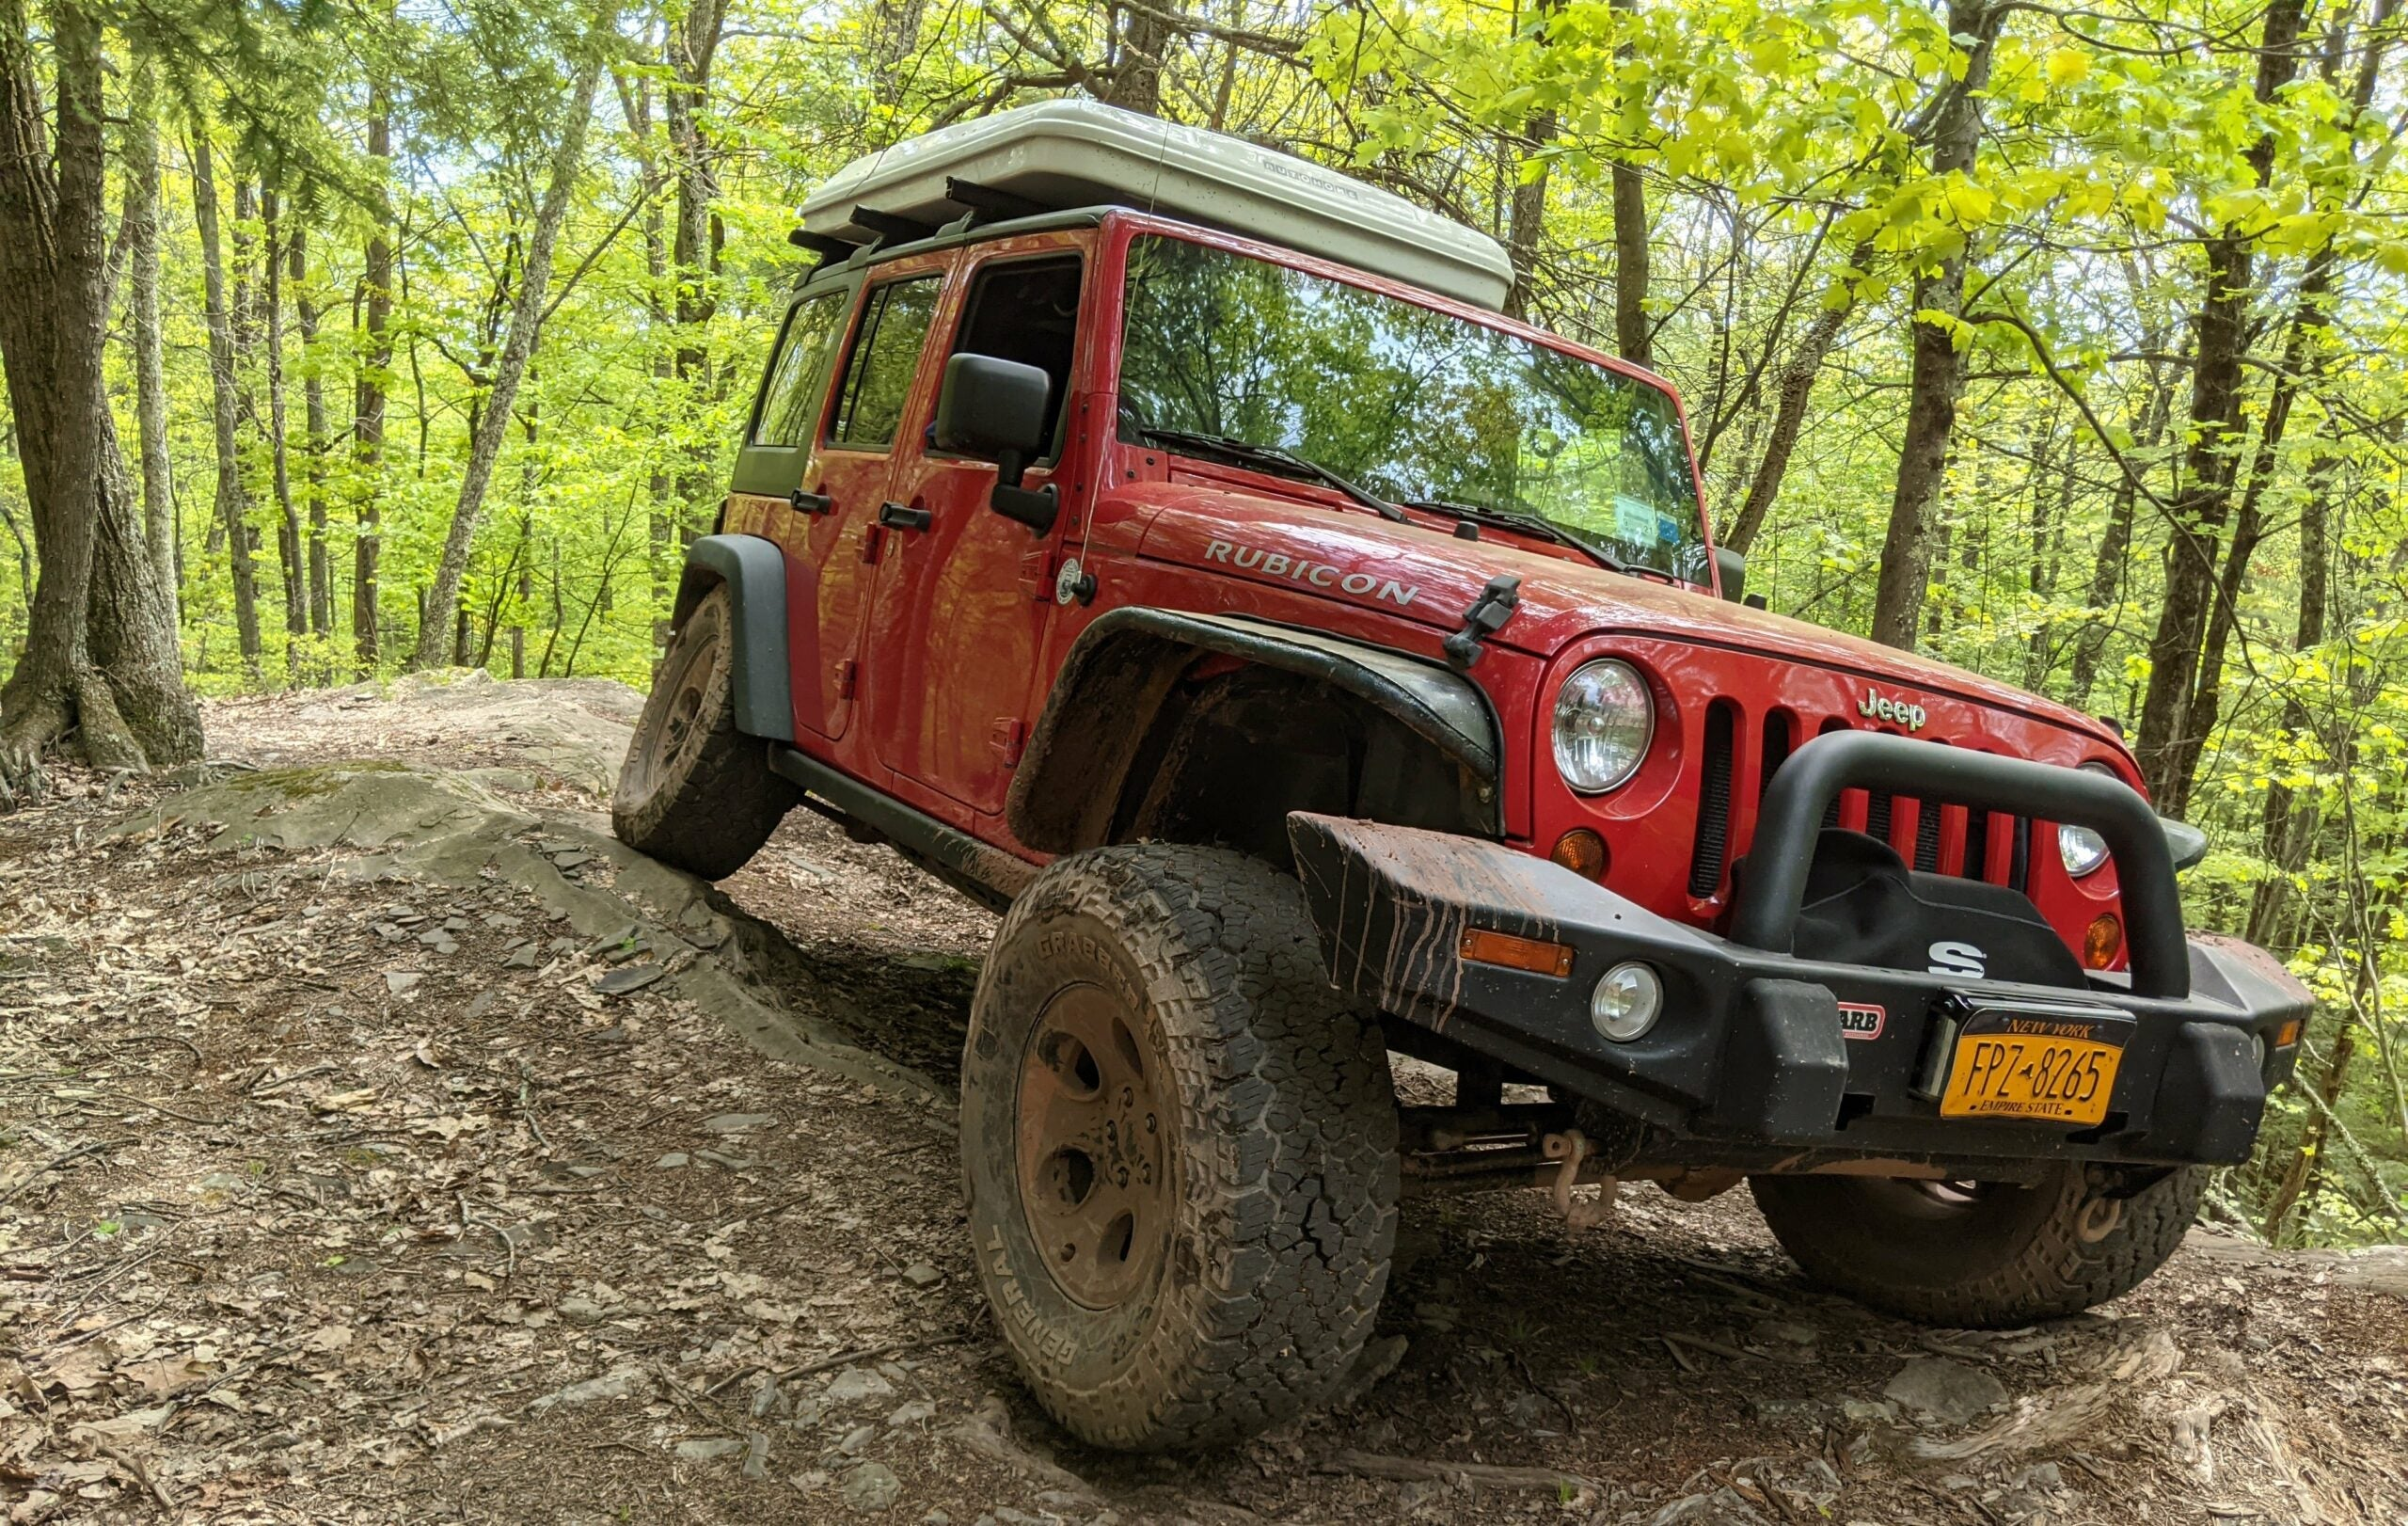 An overland jeep driving through the woods.